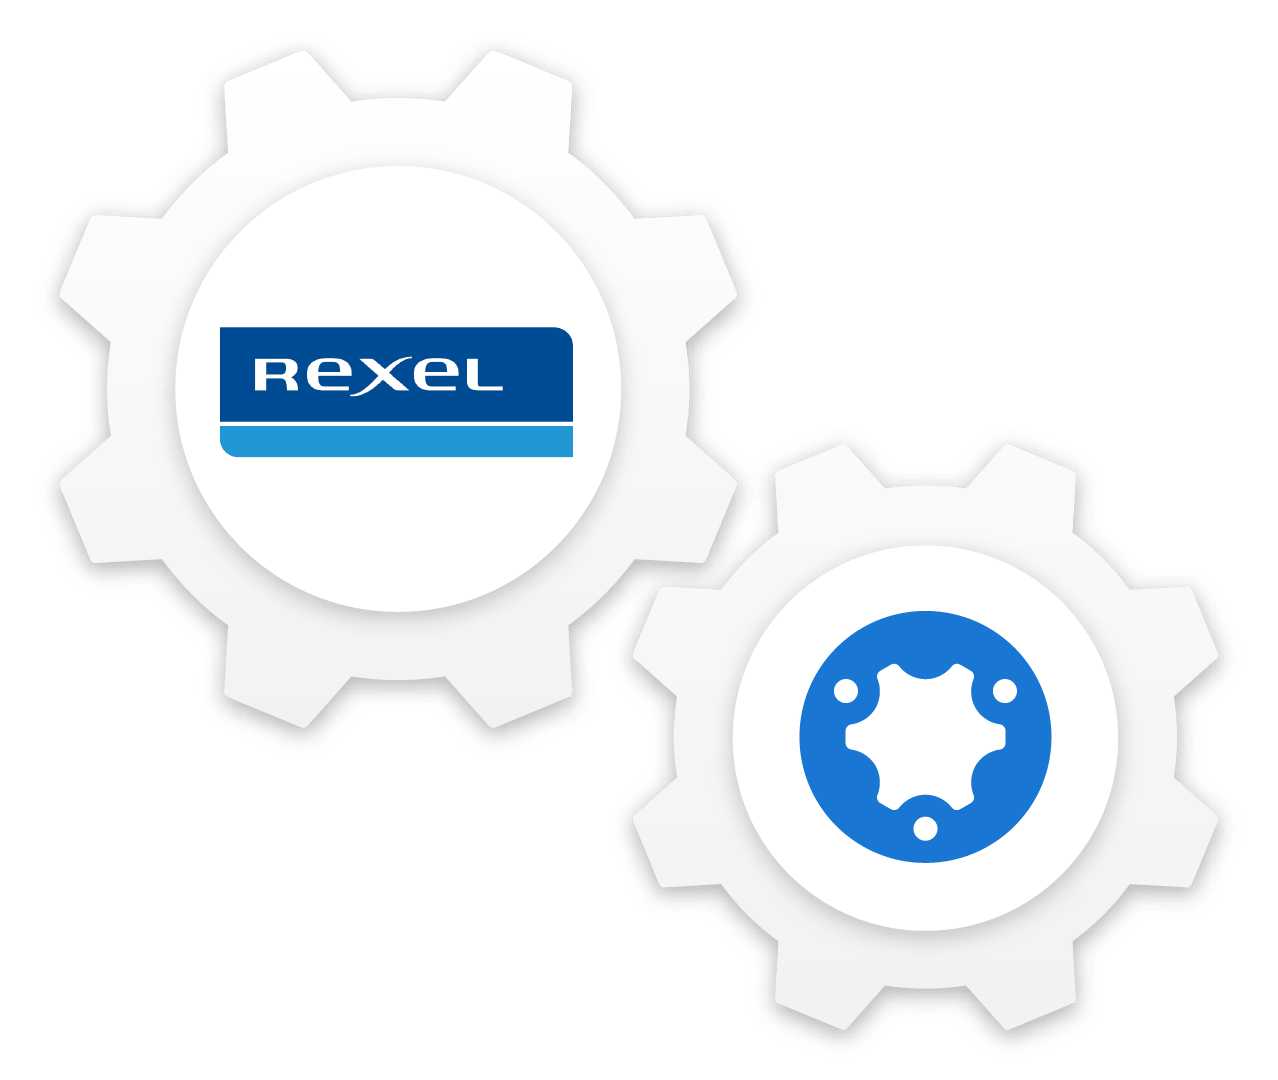 simPRO and Rexel cog composition